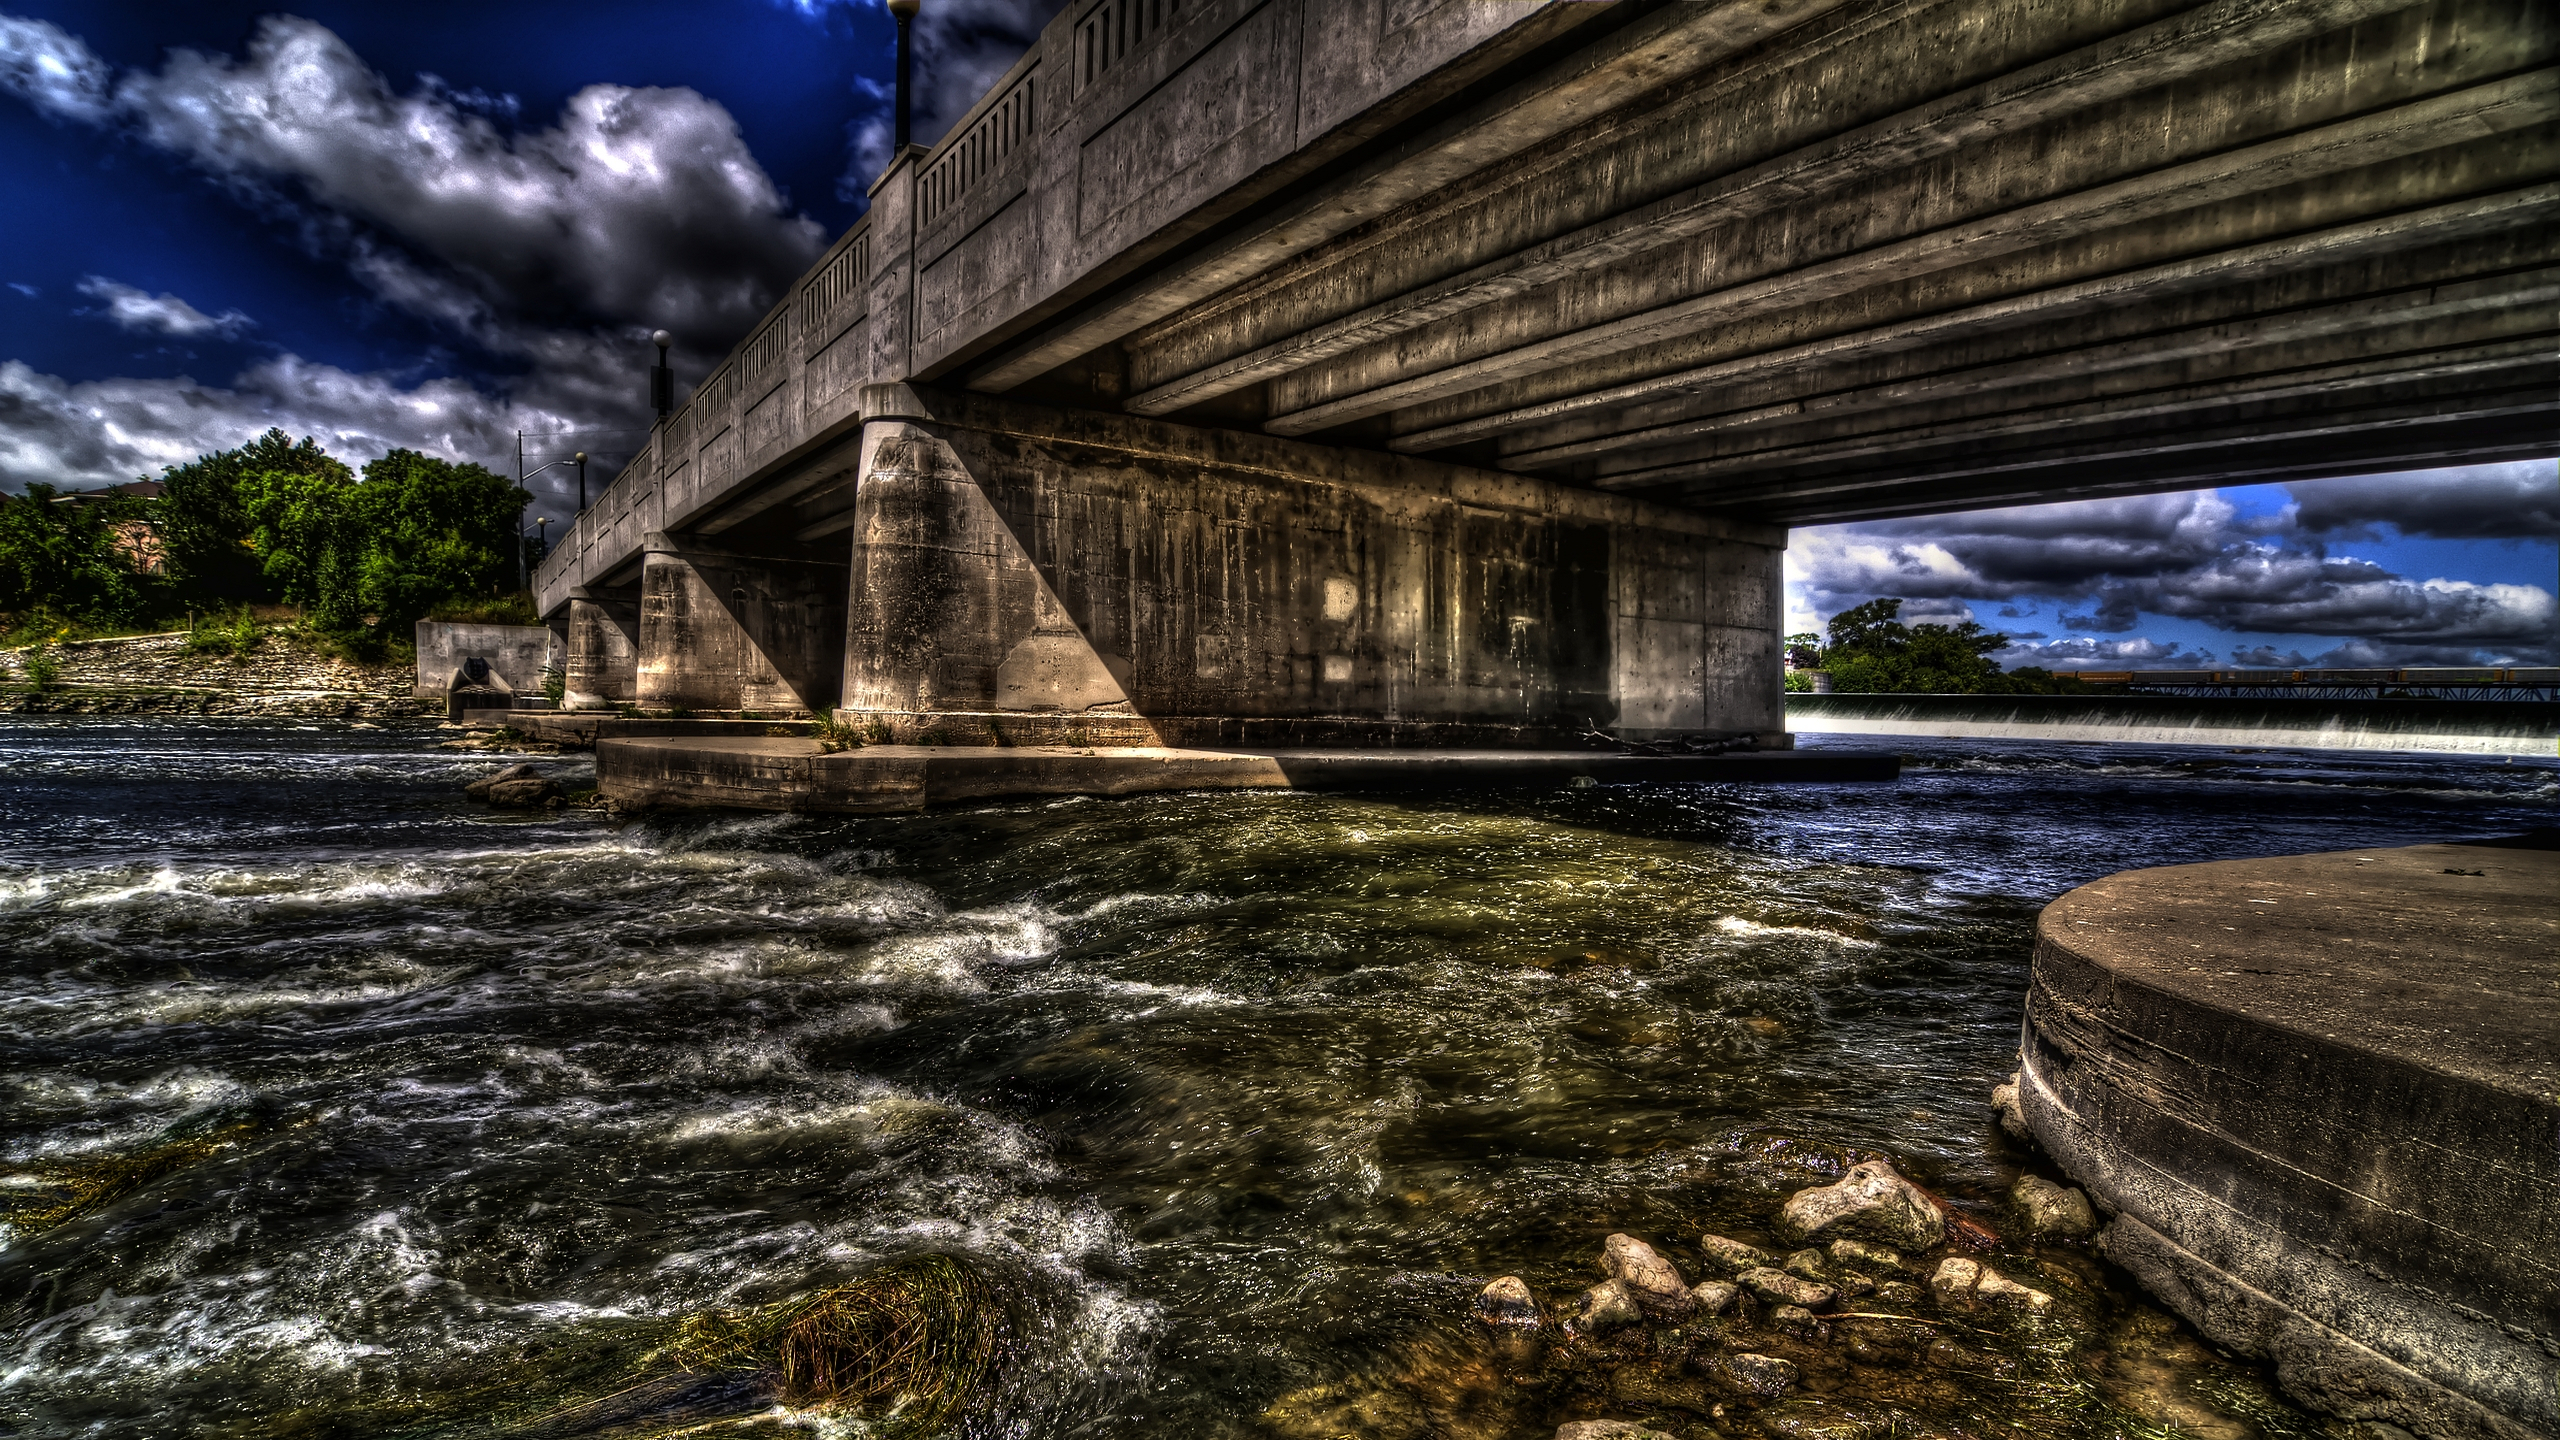 Hdr Hd Wallpaper Background Image 2560x1440 Id 169518 Wallpaper Abyss